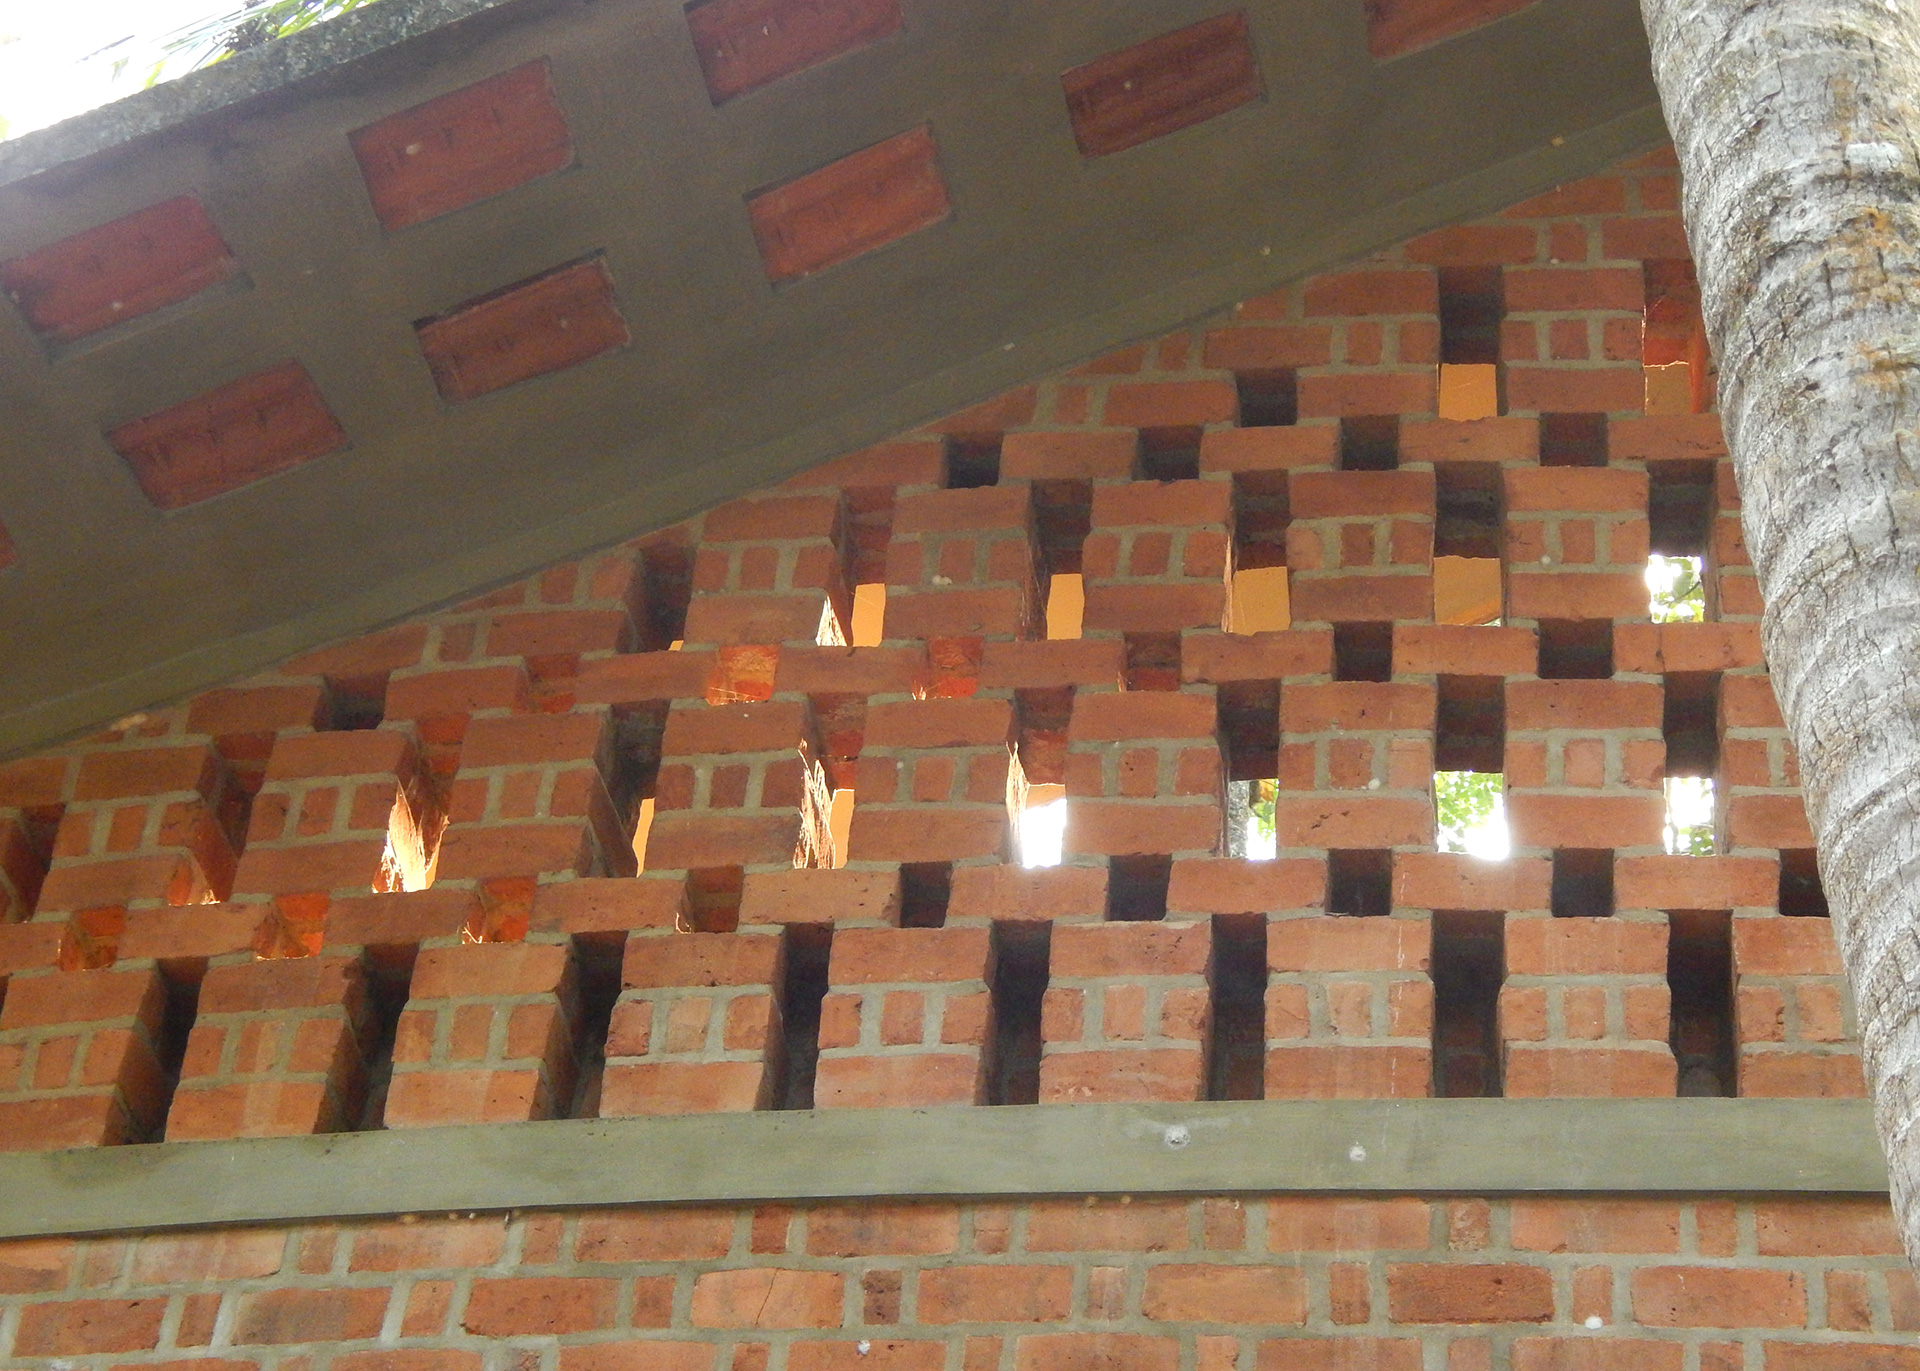 Brick perforated wall at the Laurie Baker Centre | Laurie Baker | STIRworld